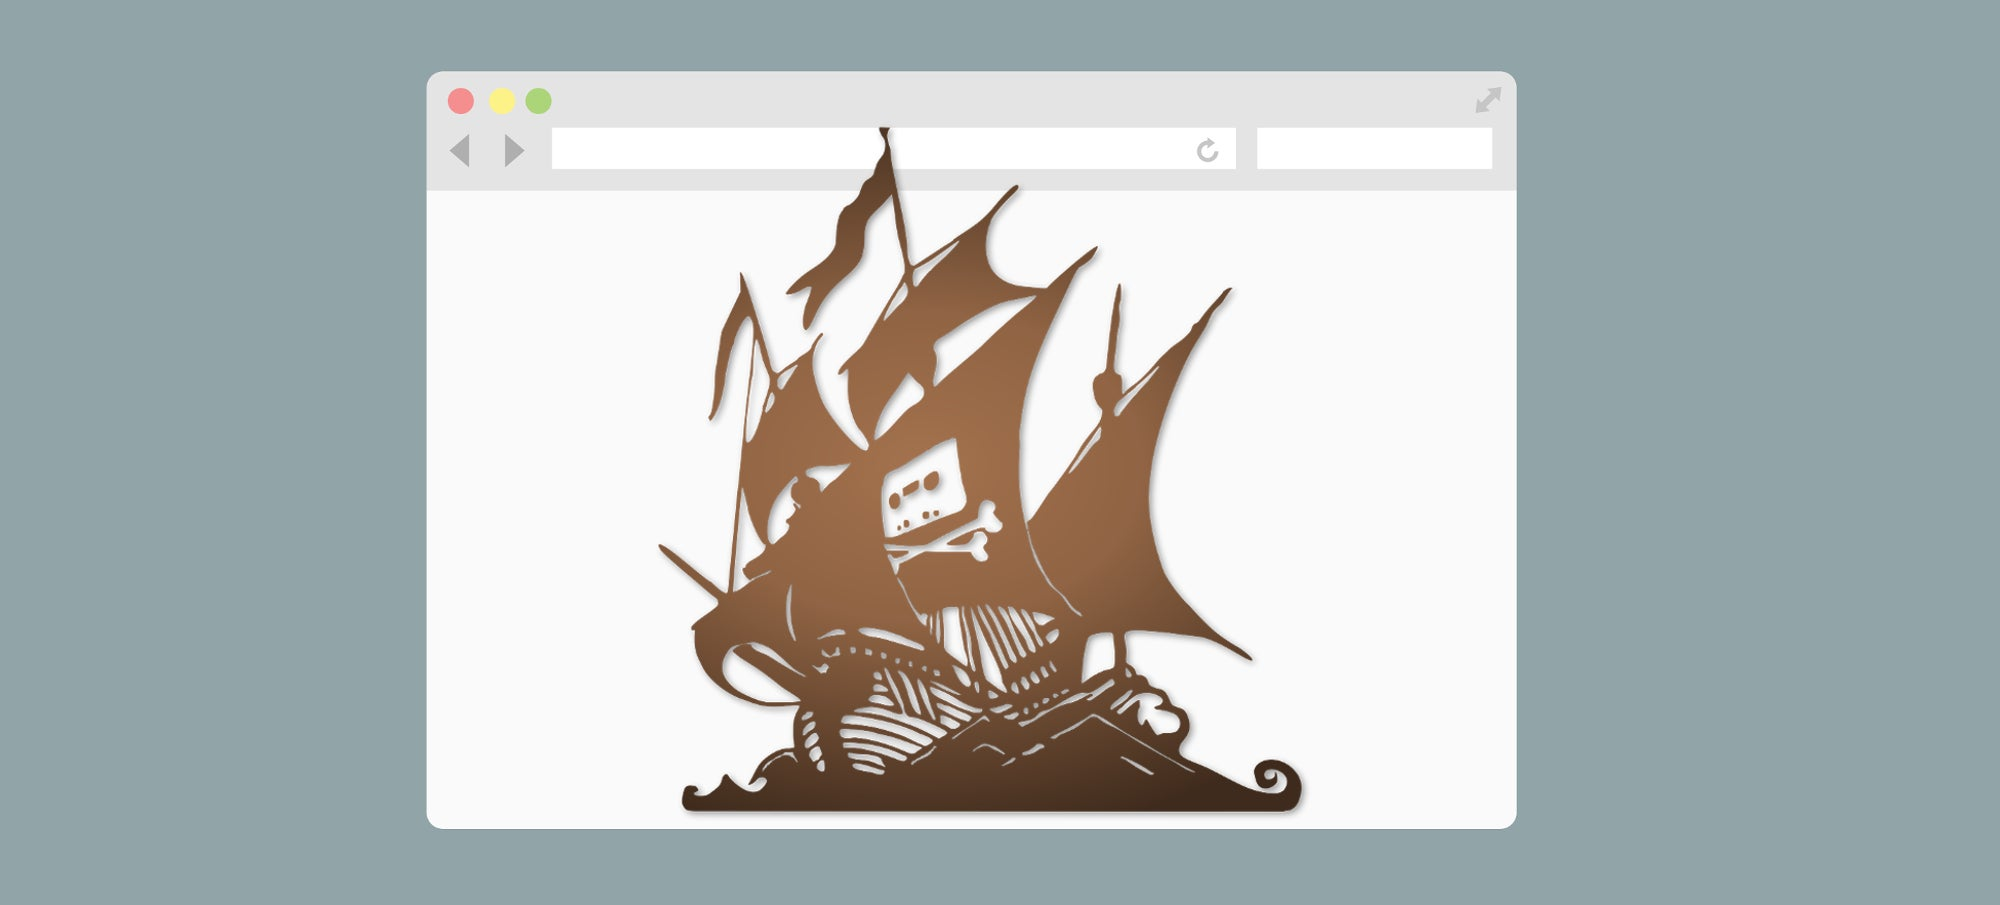 piracy pirate-bay streaming the-pirate-bay torrent-times torrents